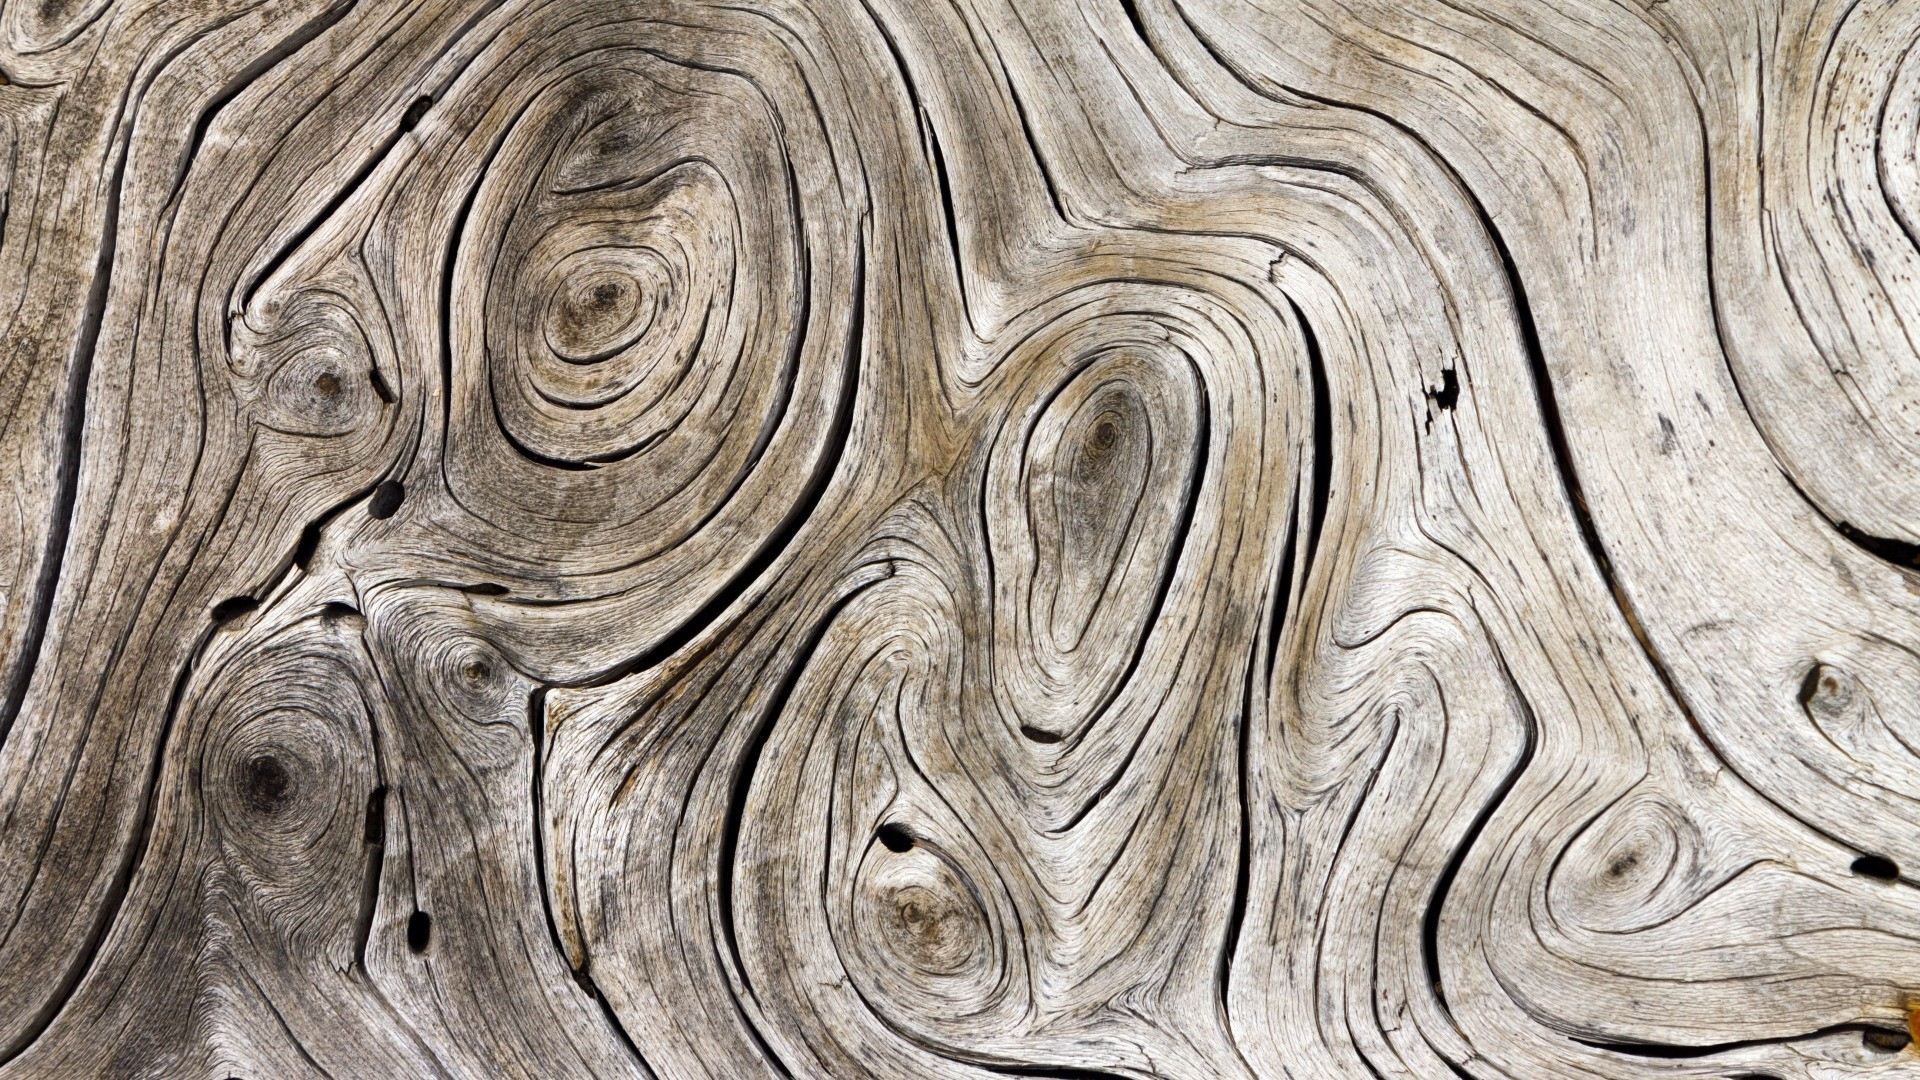 Wood Grain HD Wallpaper